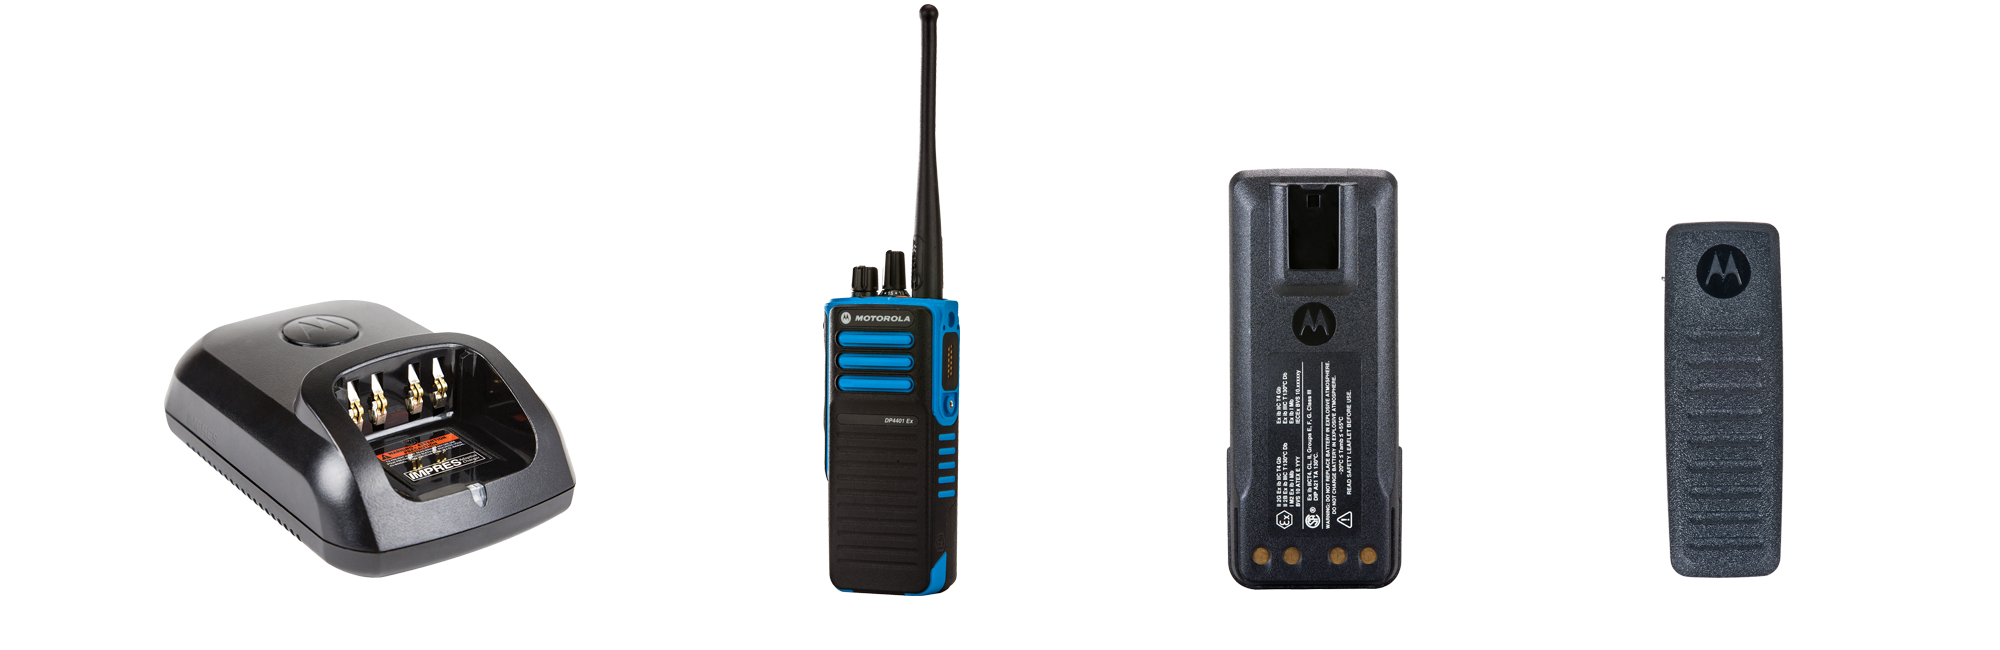 motorola atex dp4401 two way radios